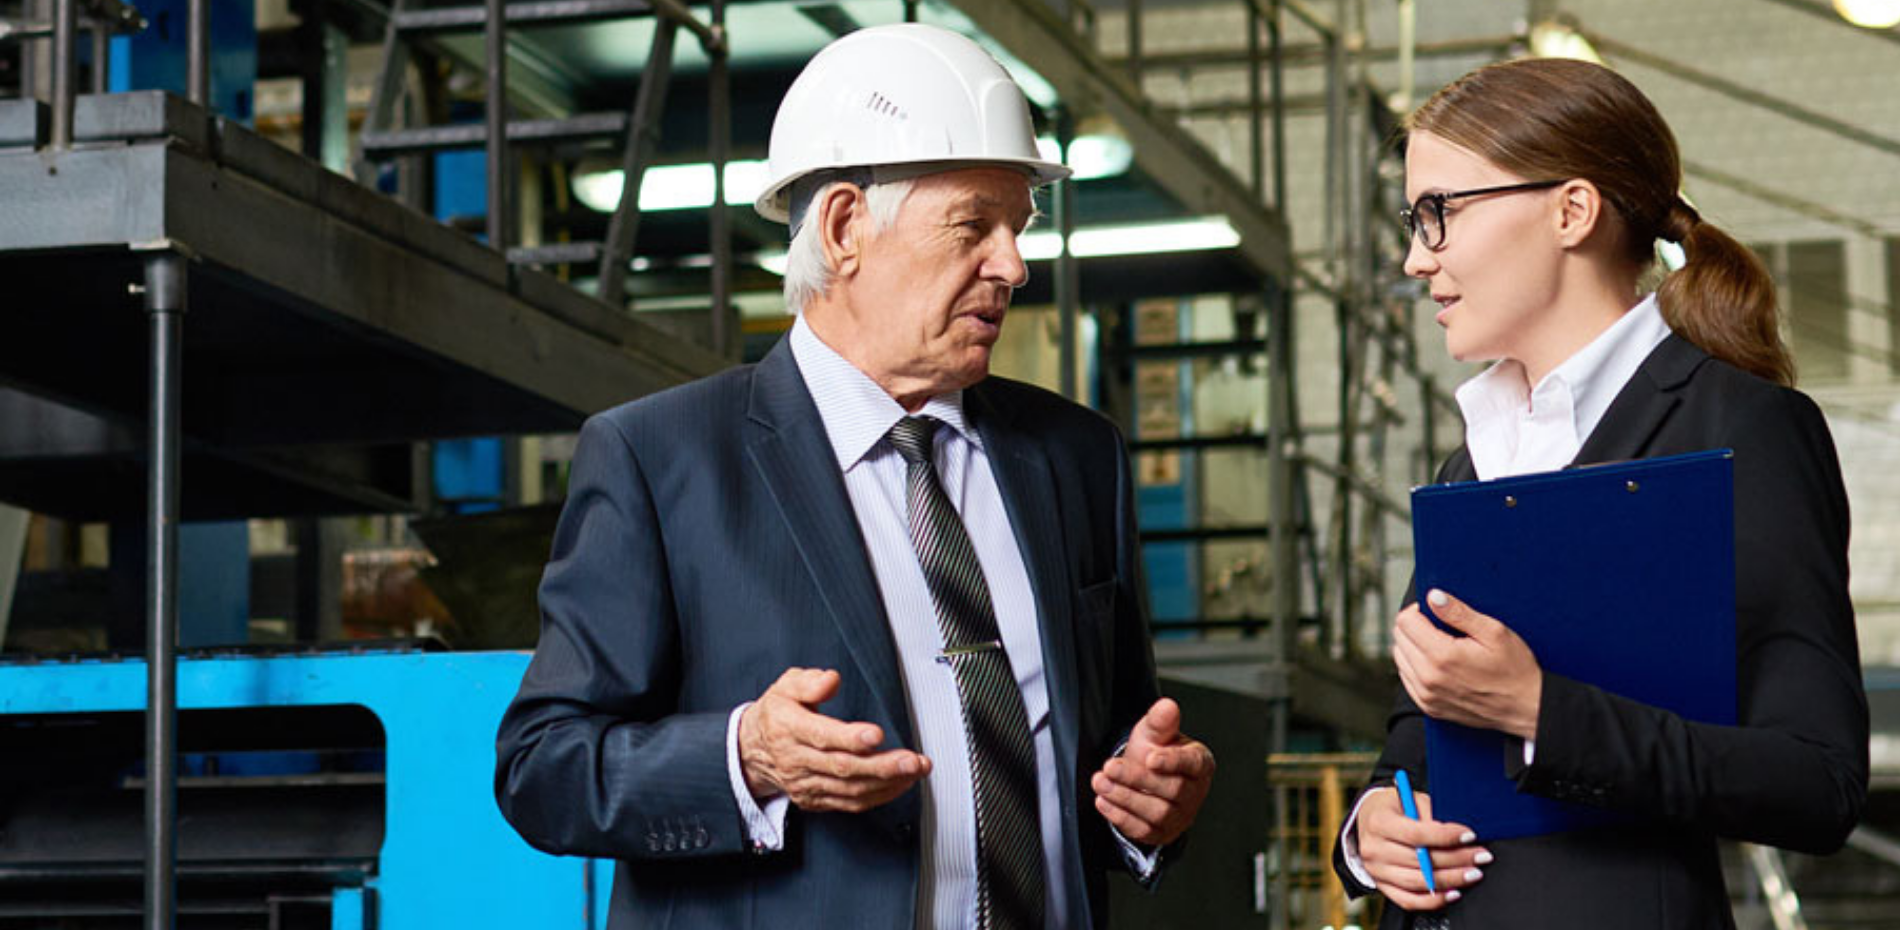 Man wearing hard hat talking to woman in front of factory equipment